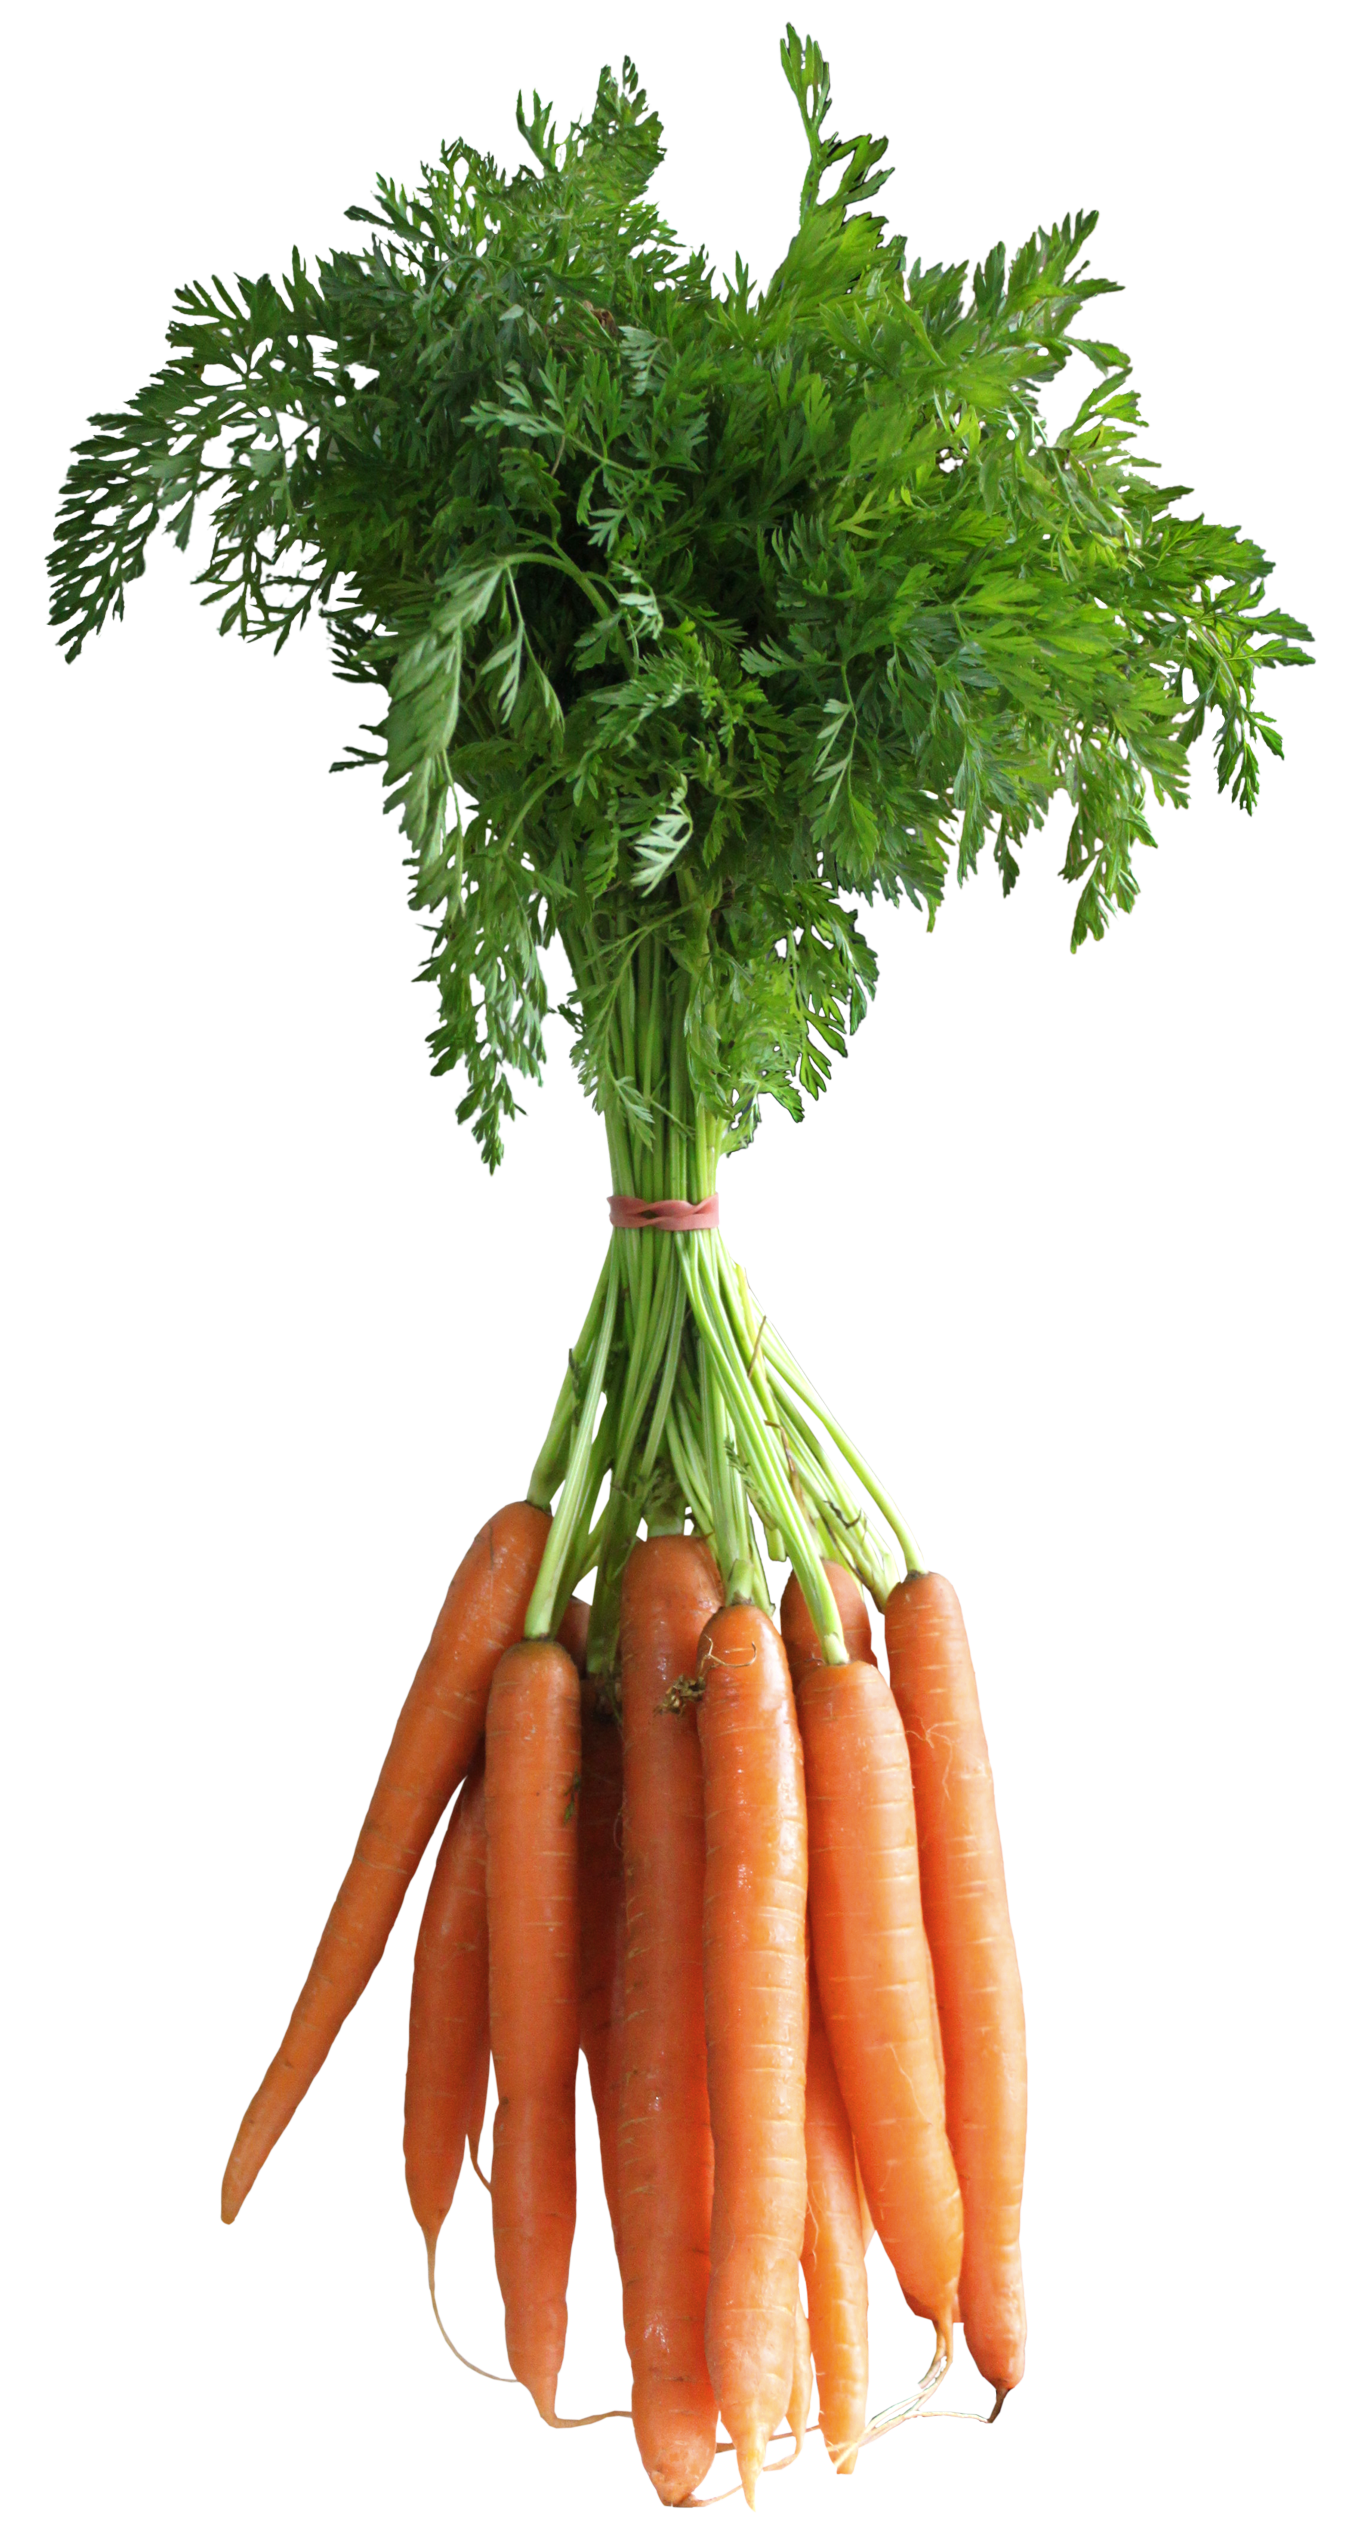 Carrot plant png. Carrots clipart picture gallery